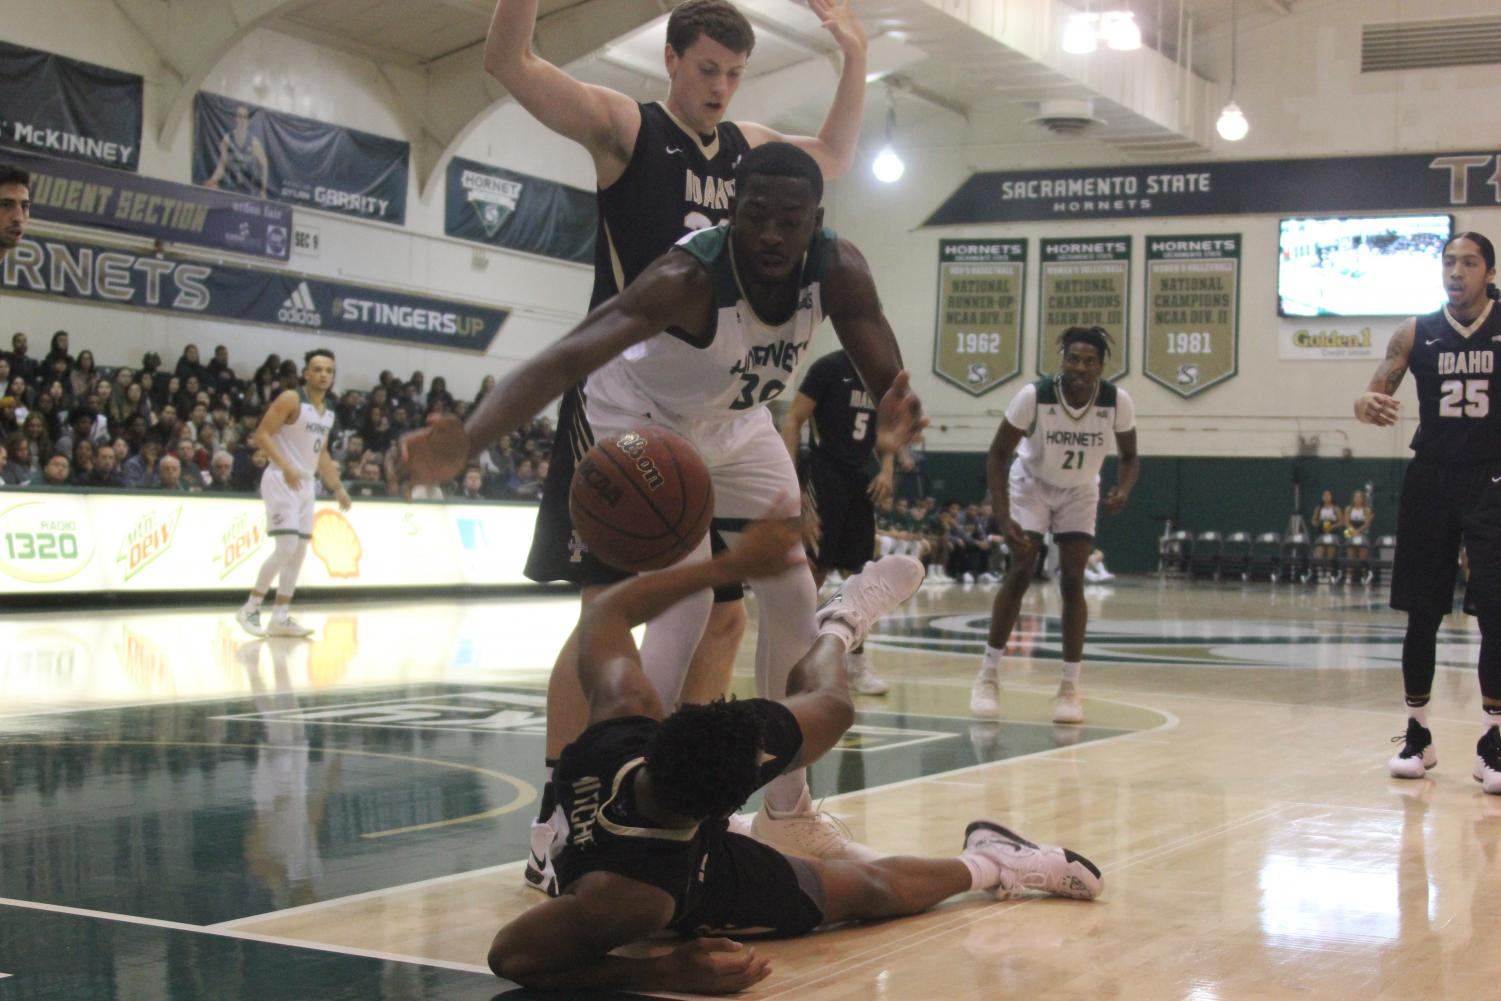 Sac State junior center Joshua Patton dives for the ball during the Hornets 69-48 win over the University of Idaho on Thursday. Patton finished the game with 13 points and 8 rebounds.